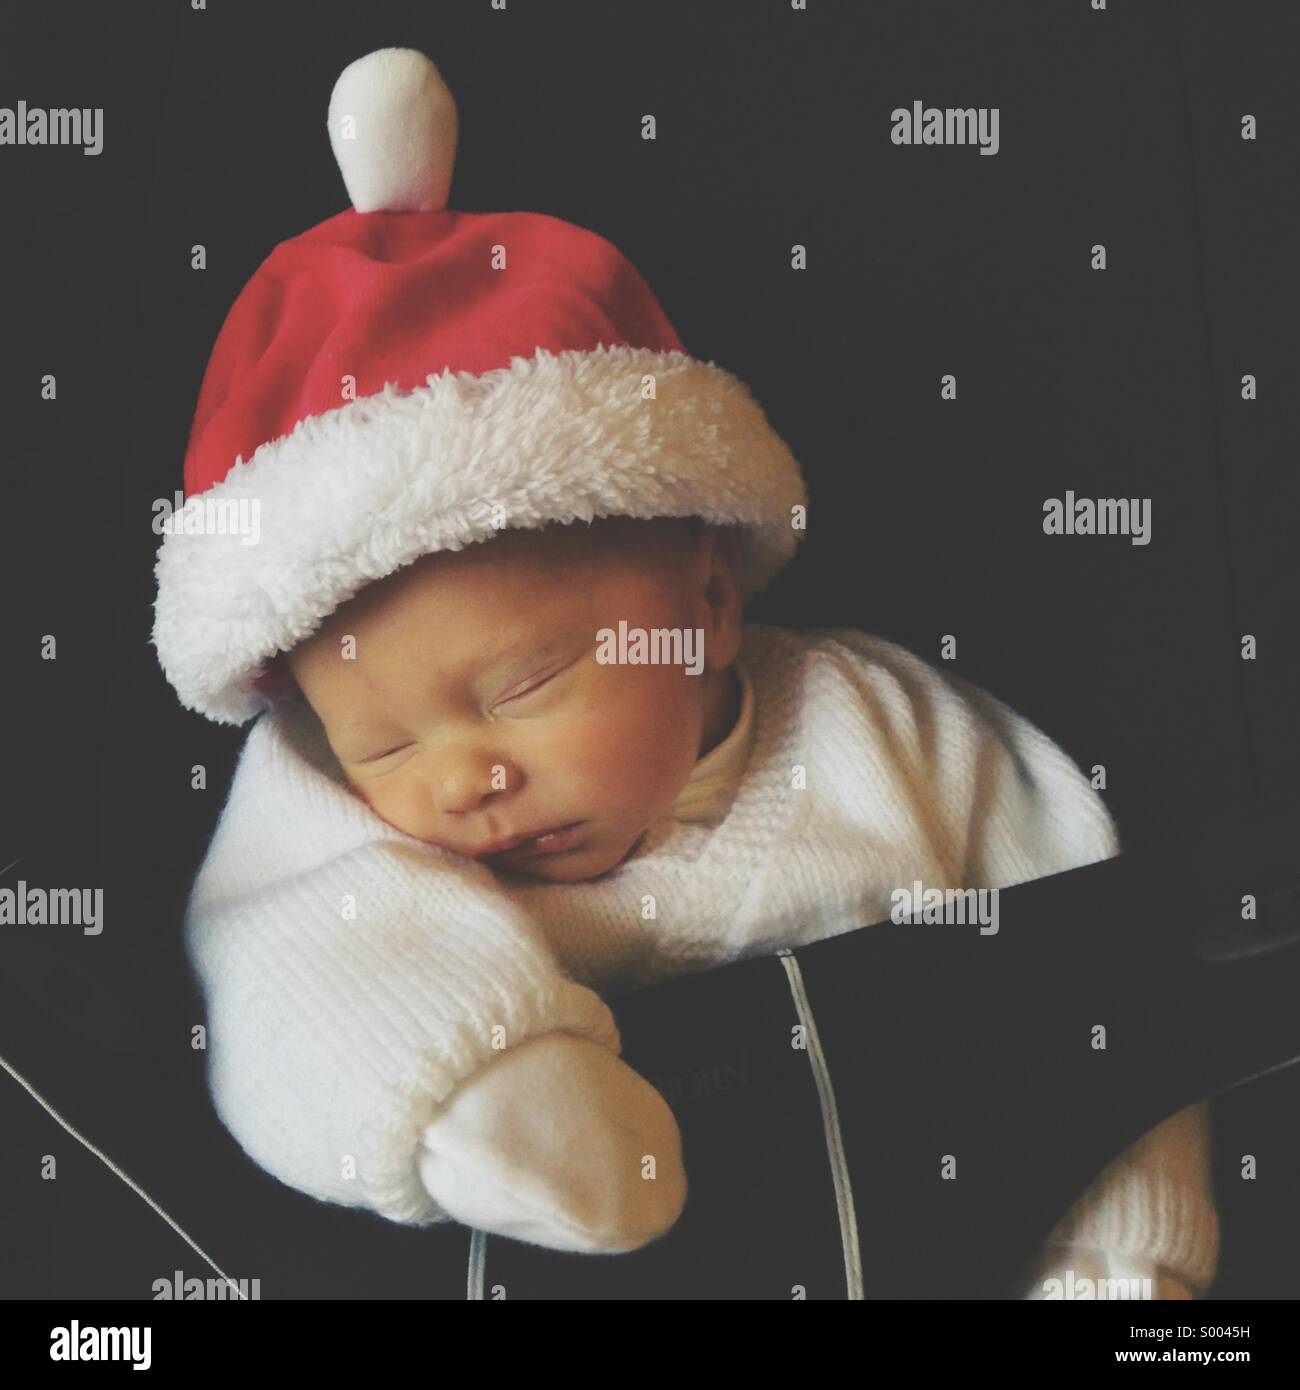 Newborn baby in a Santa hat asleep in a chair. - Stock Image